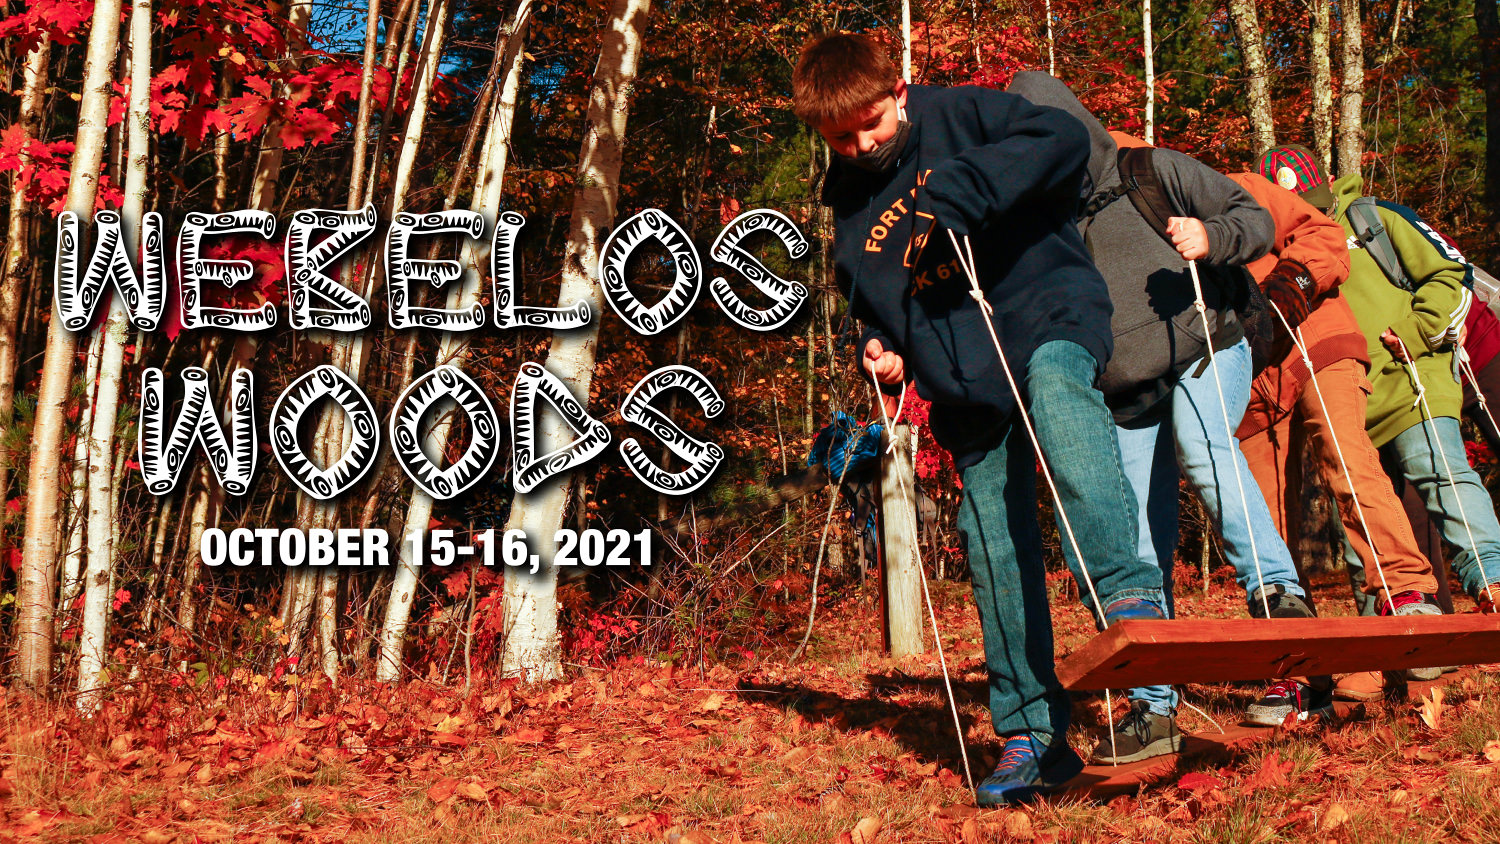 Webelos Woods advertisement with picture of kids playing